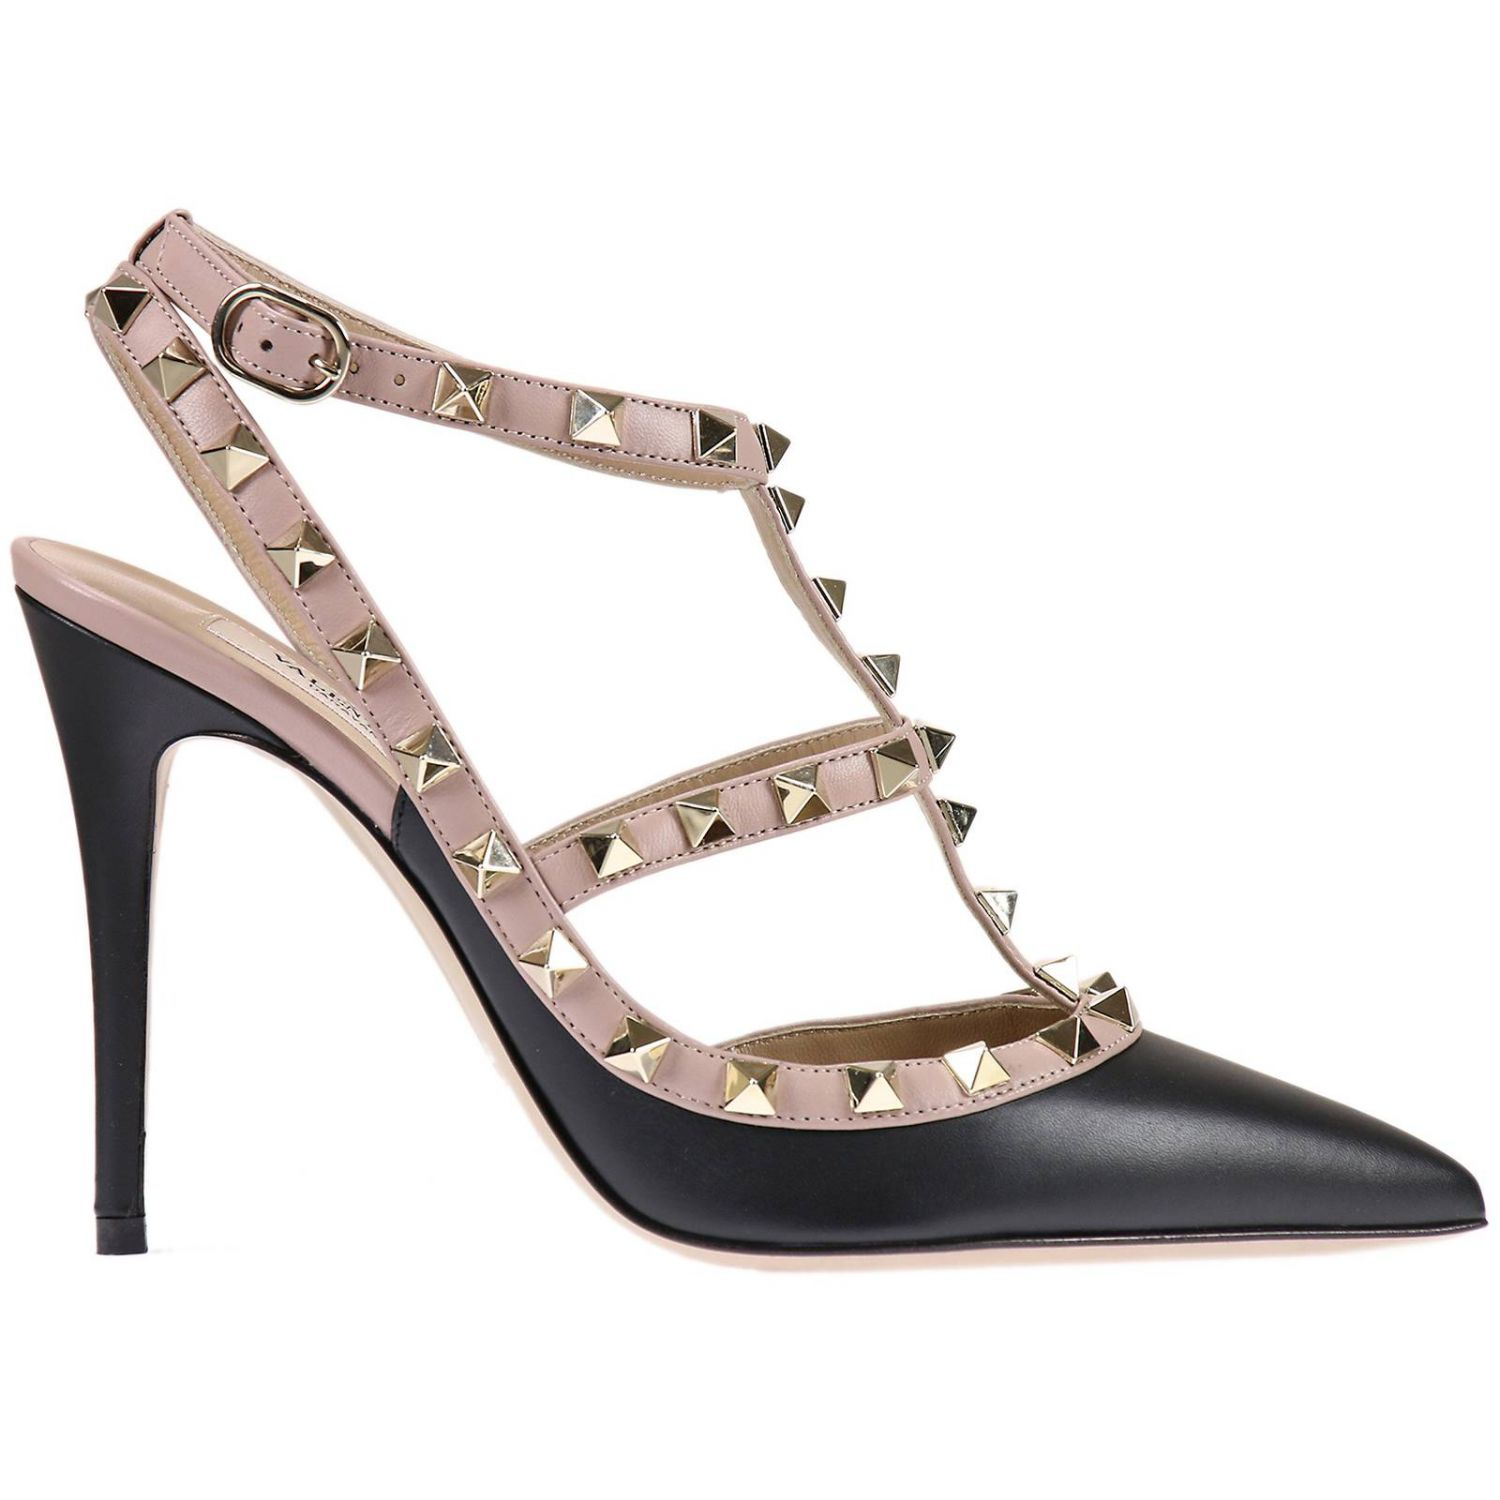 Valentino Shoes Woman Valentino in Pink | Lyst